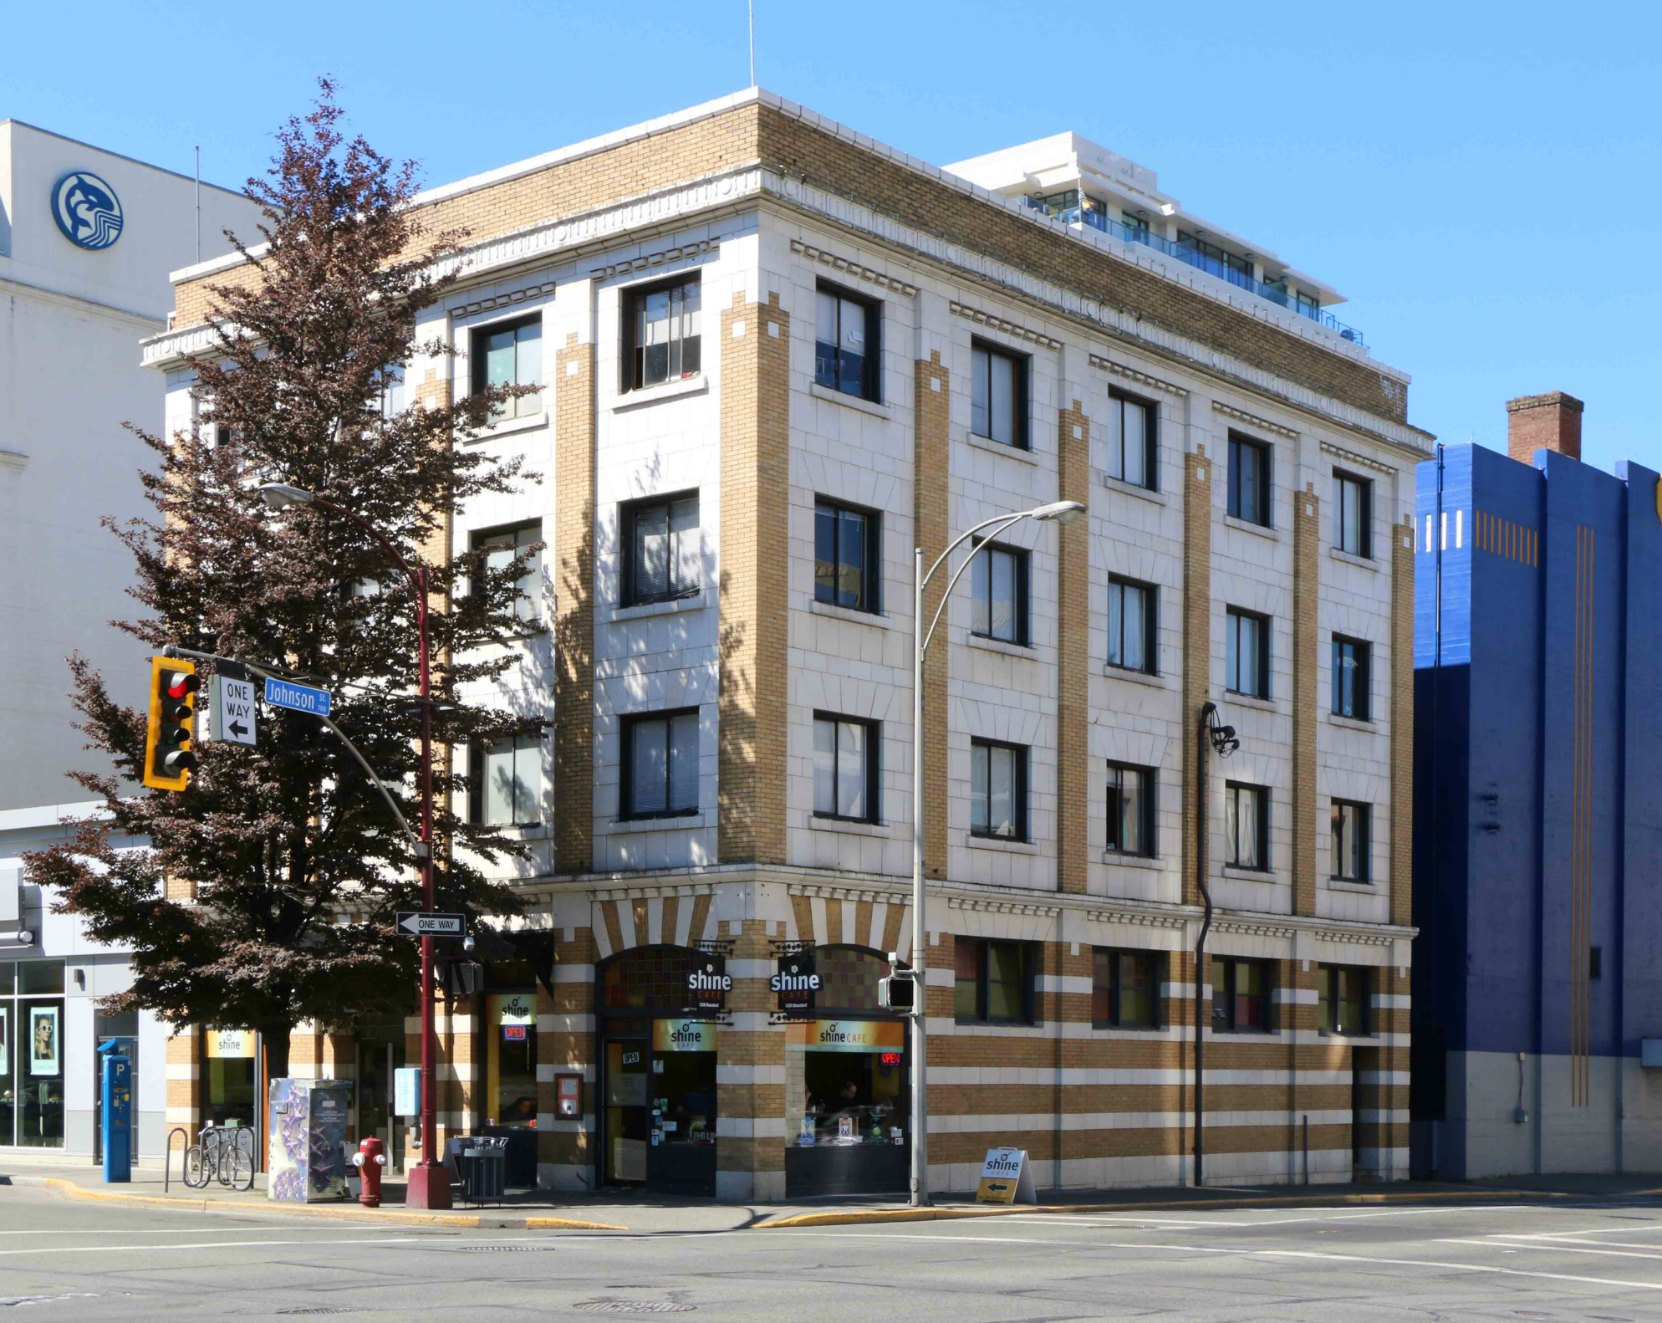 1320-1324 Blanshard Street, Victoria, B.C. Built in 1913 by architect Thomas Hooper for Max Leiser, who opened it as the Kaiserhof Hotel